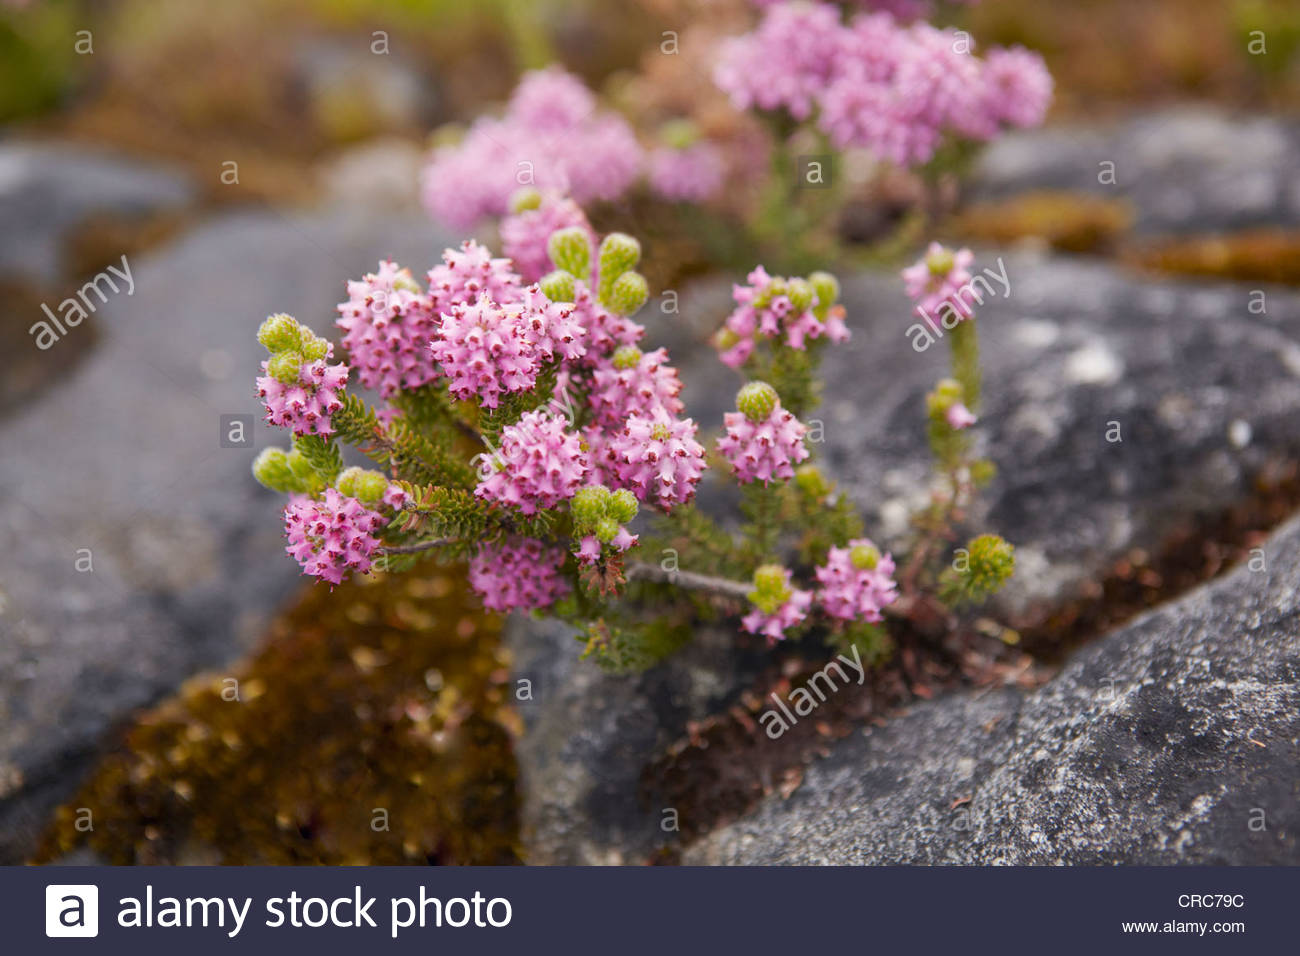 Close up of flowers growing in rocks - Stock Image